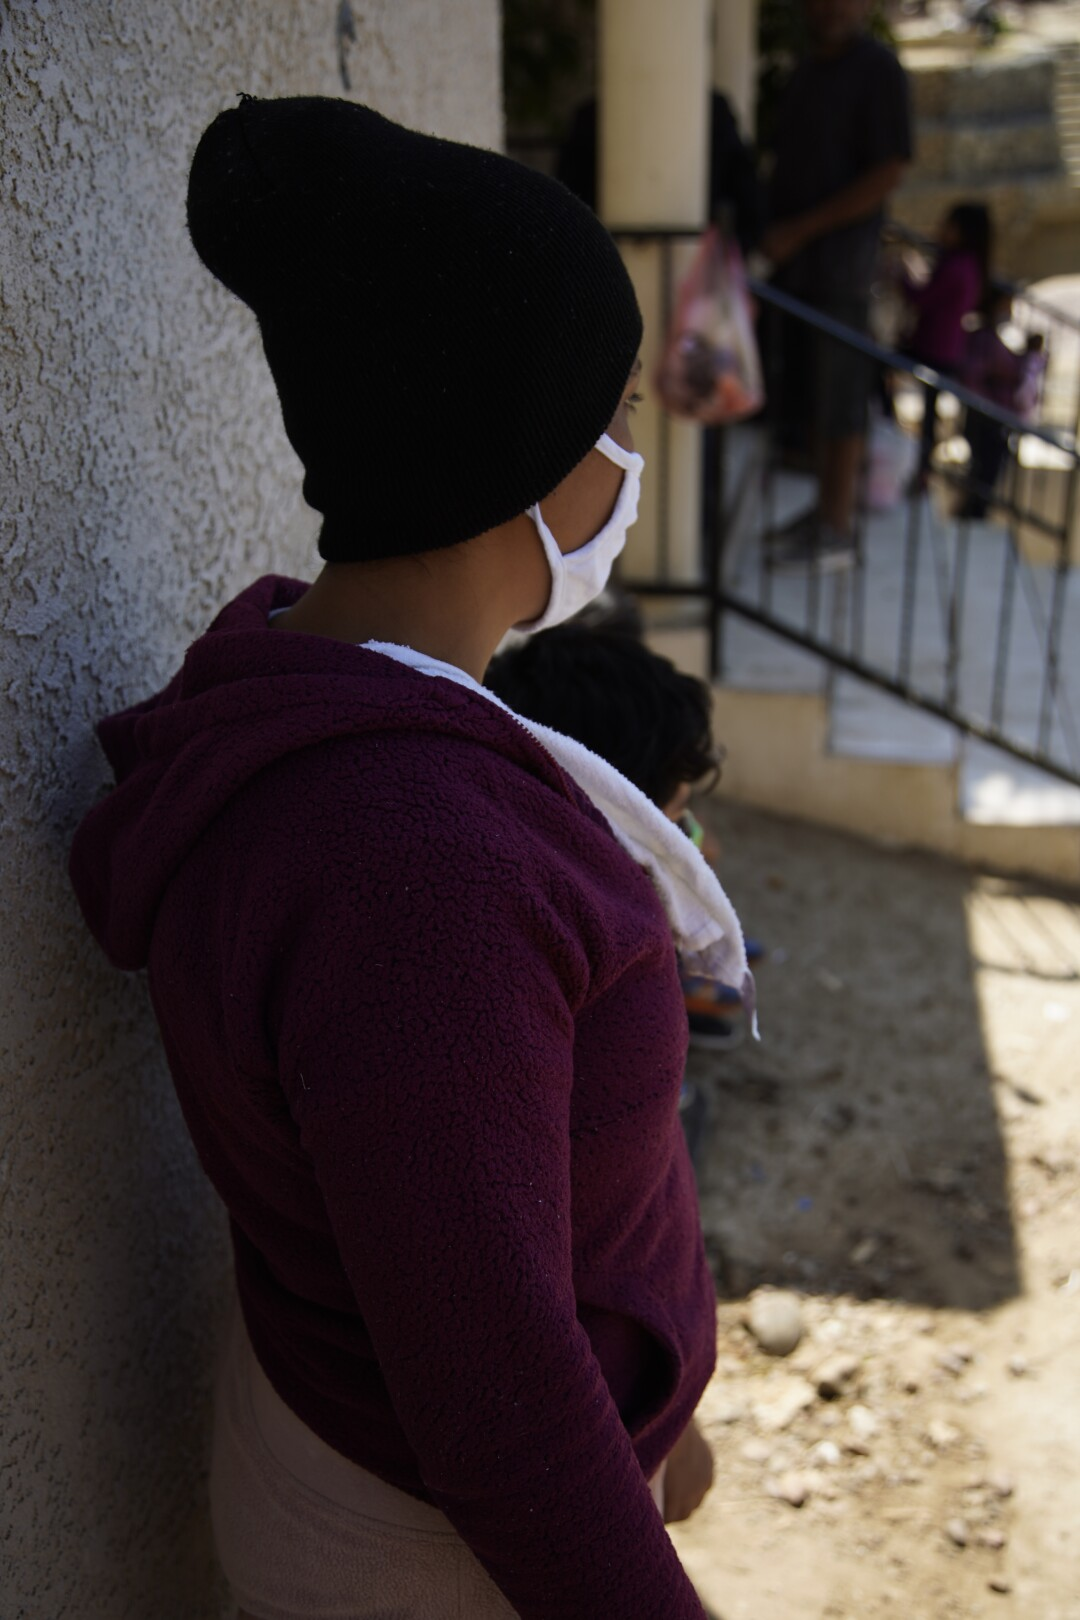 A migrant in Tijuana turns her face away from the camera to avoid being identified